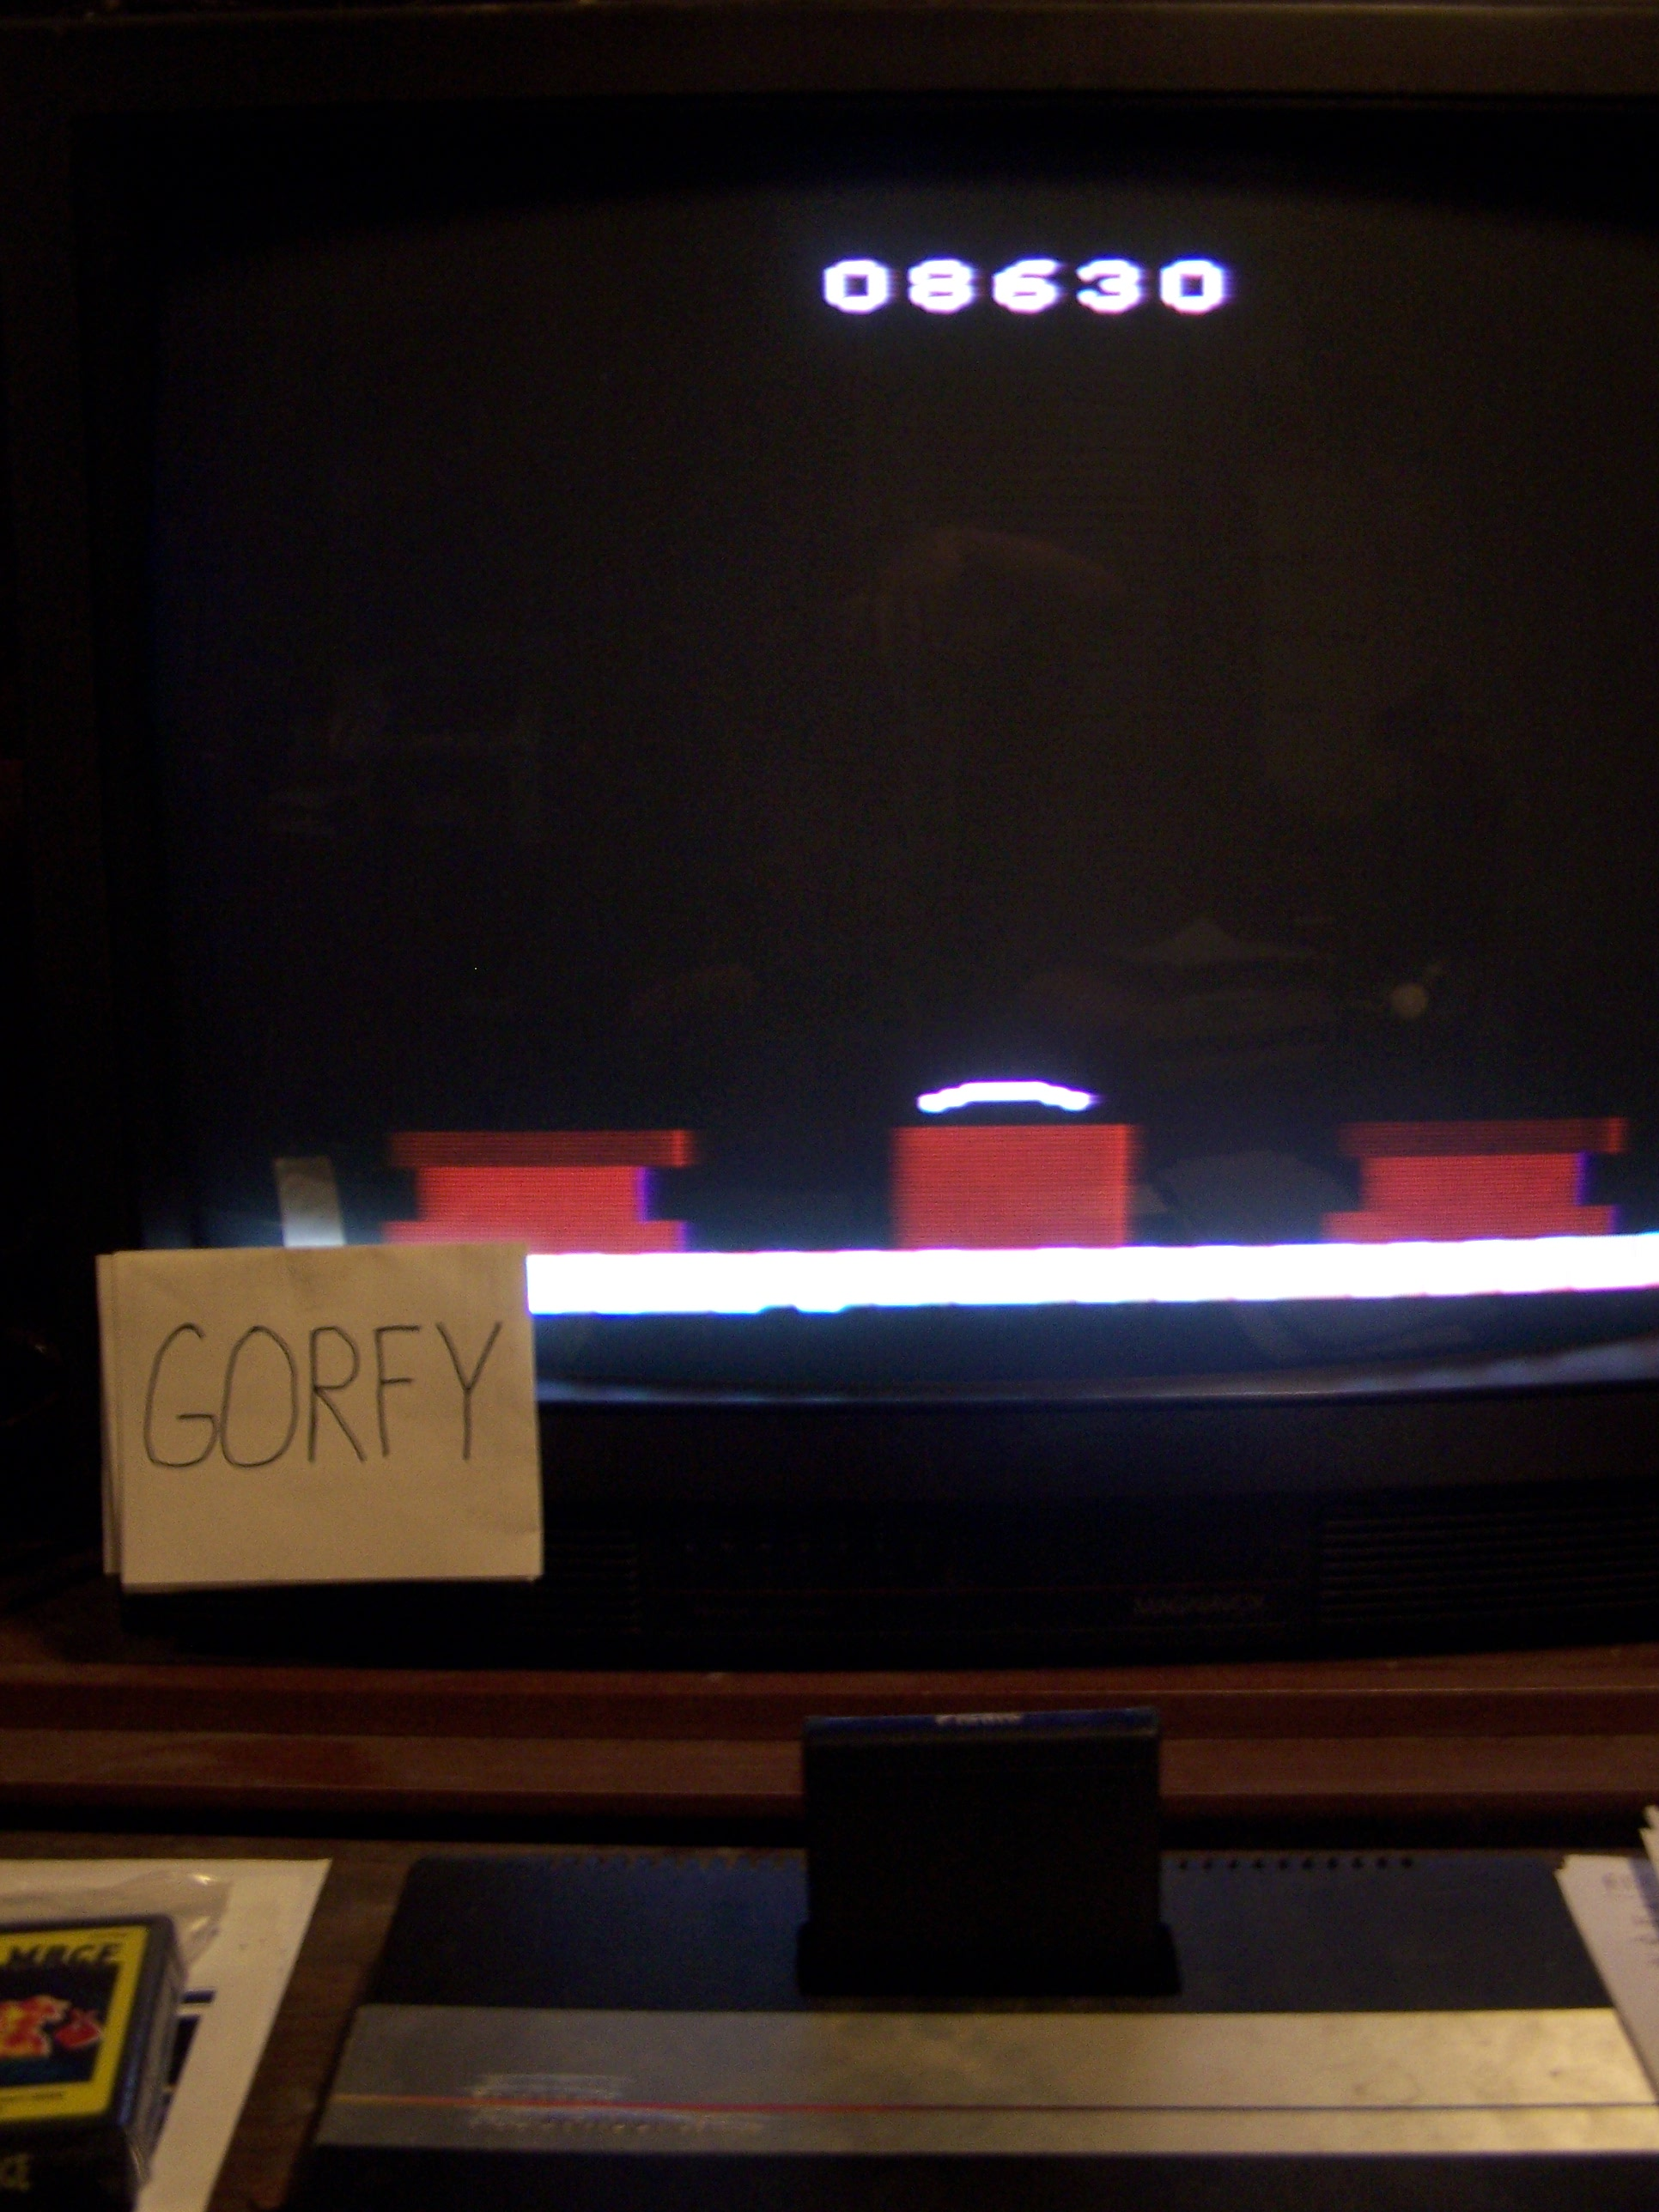 Gorfy: Picnic (Atari 2600 Expert/A) 8,630 points on 2015-07-04 00:20:11